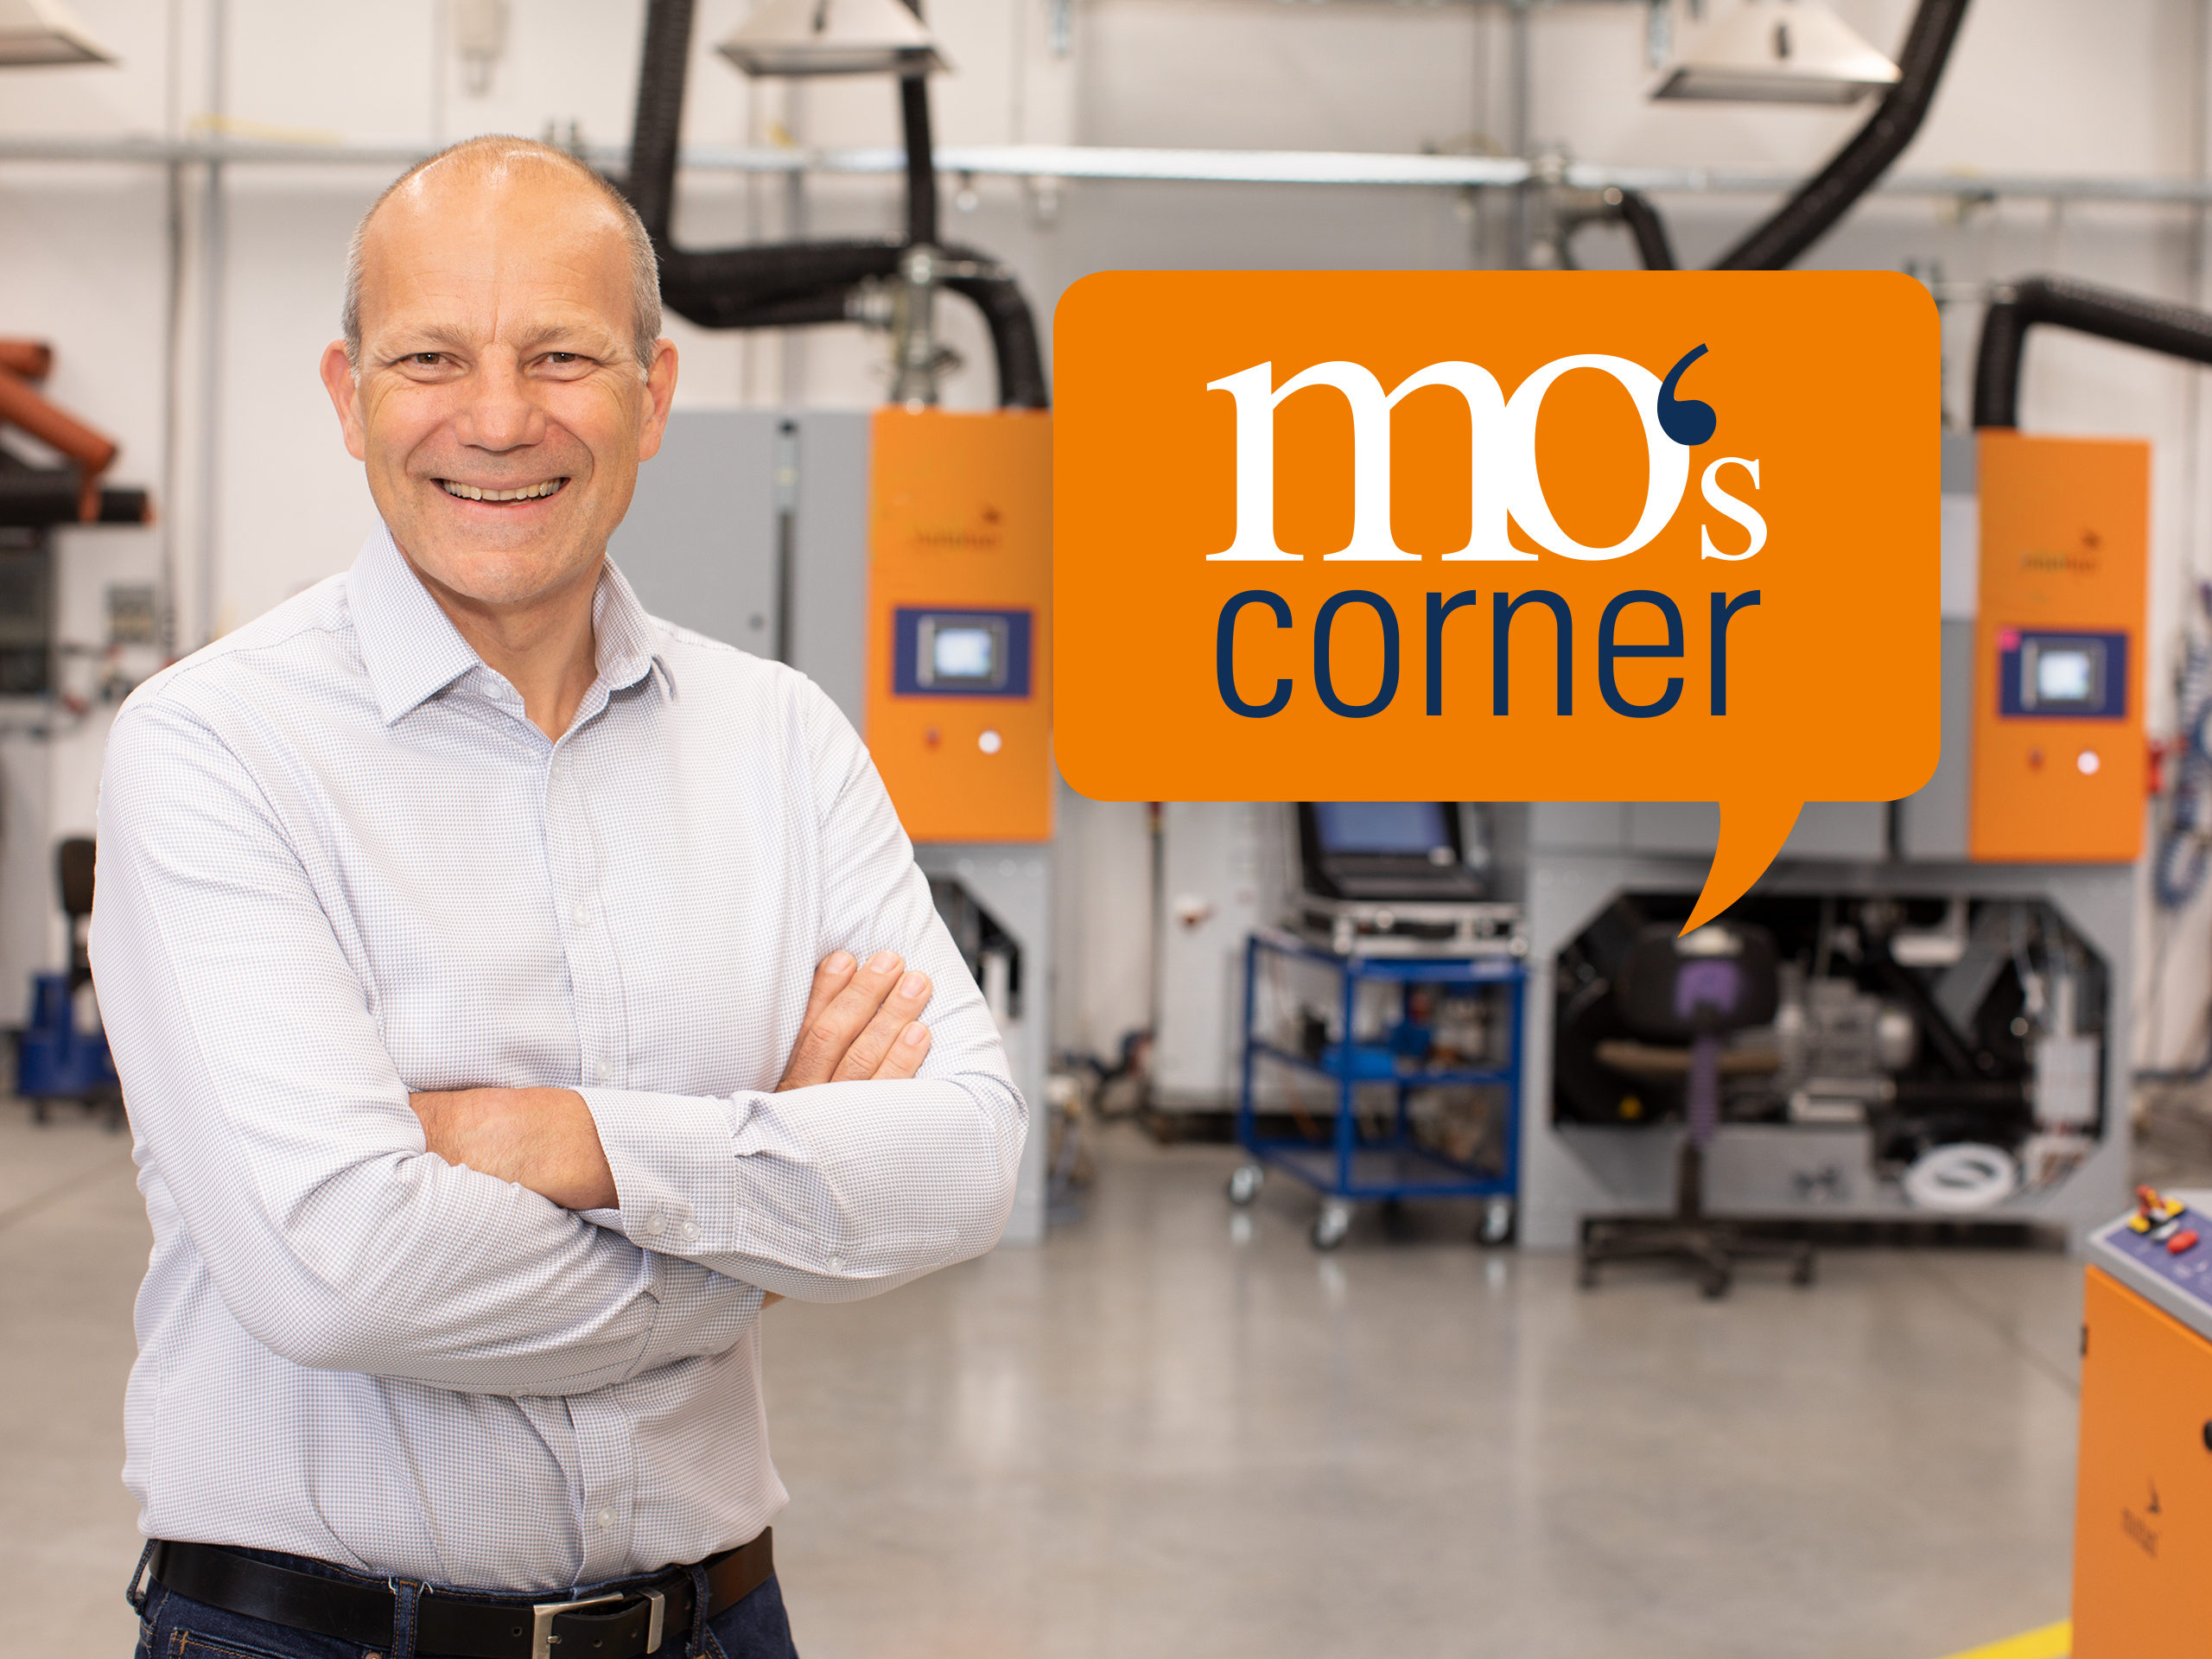 mo's corner FAQs for experts. Answered by experts.